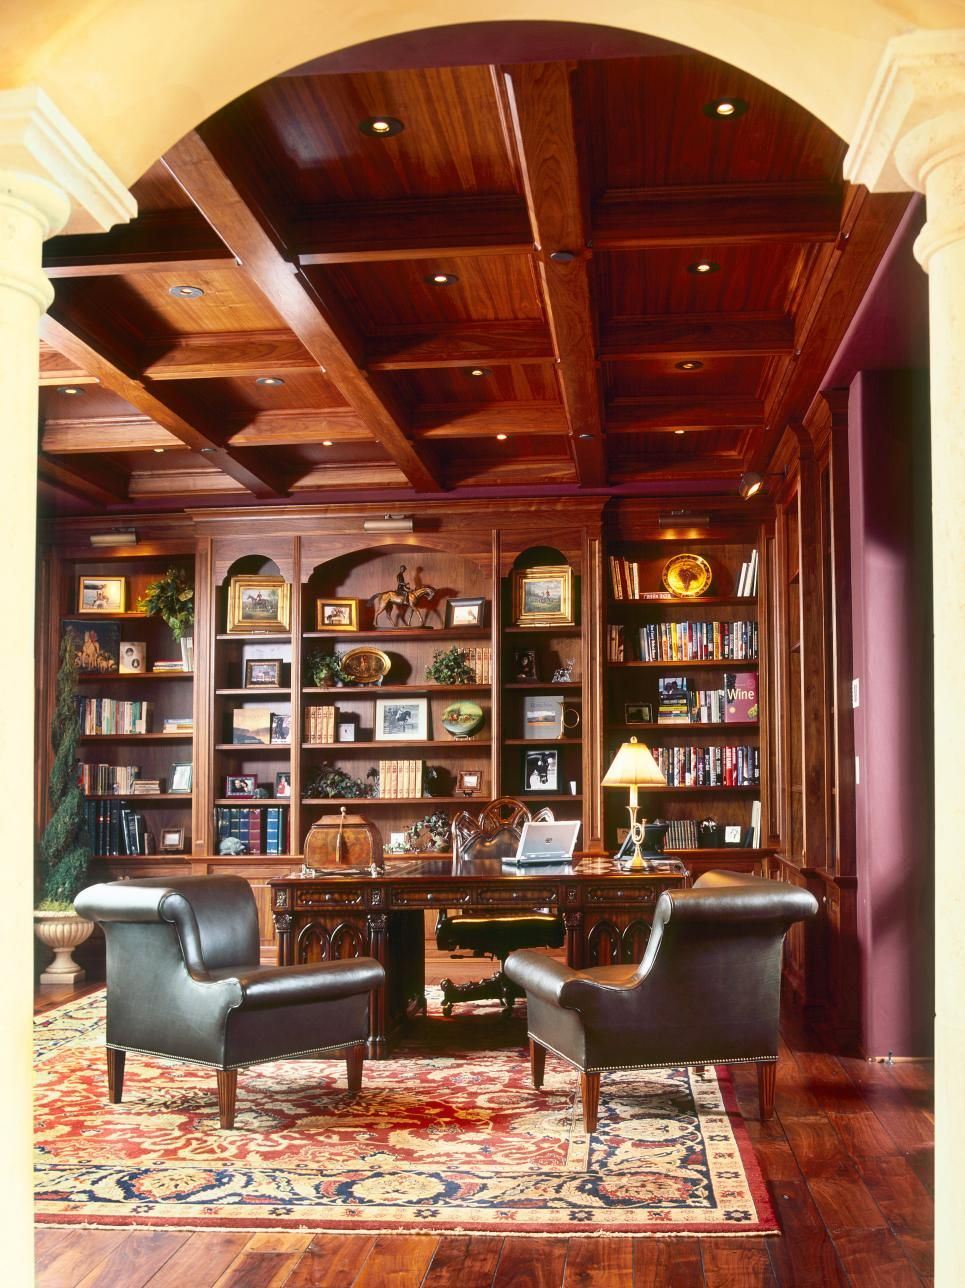 Interior Design Home Library: The High Grid Ceiling And Arched Entryway Bring